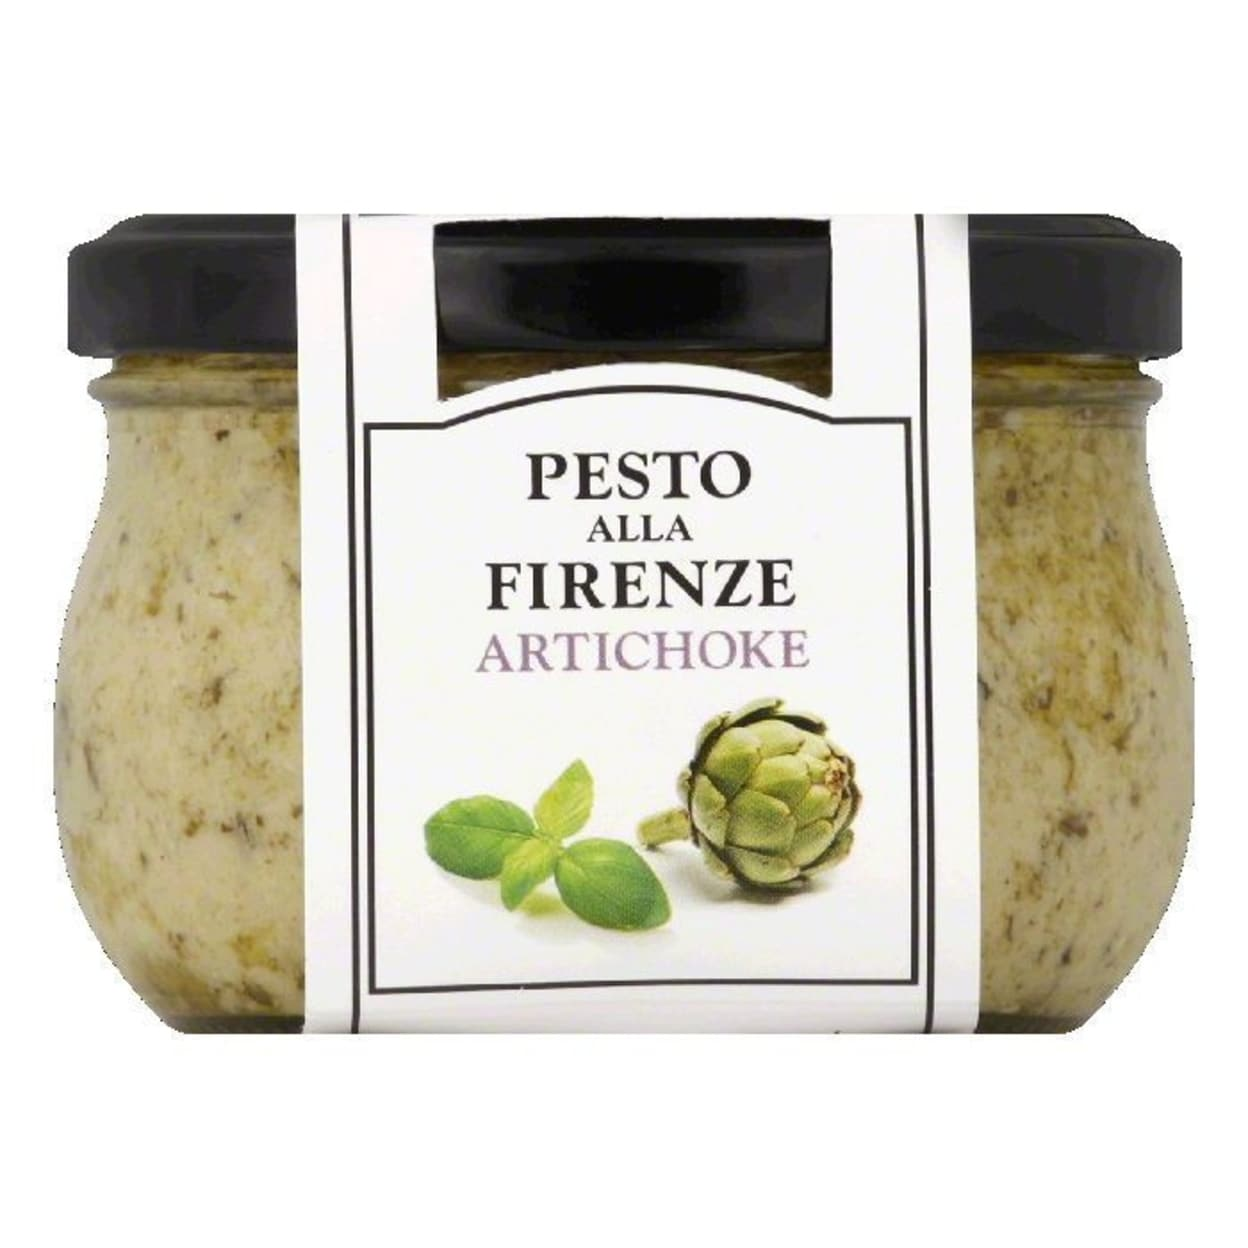 Cucina & Amore White Balsamic Vinegar Cucina Amore Artichoke Alla Firenze Pesto 7 9 Oz Pack Of 6